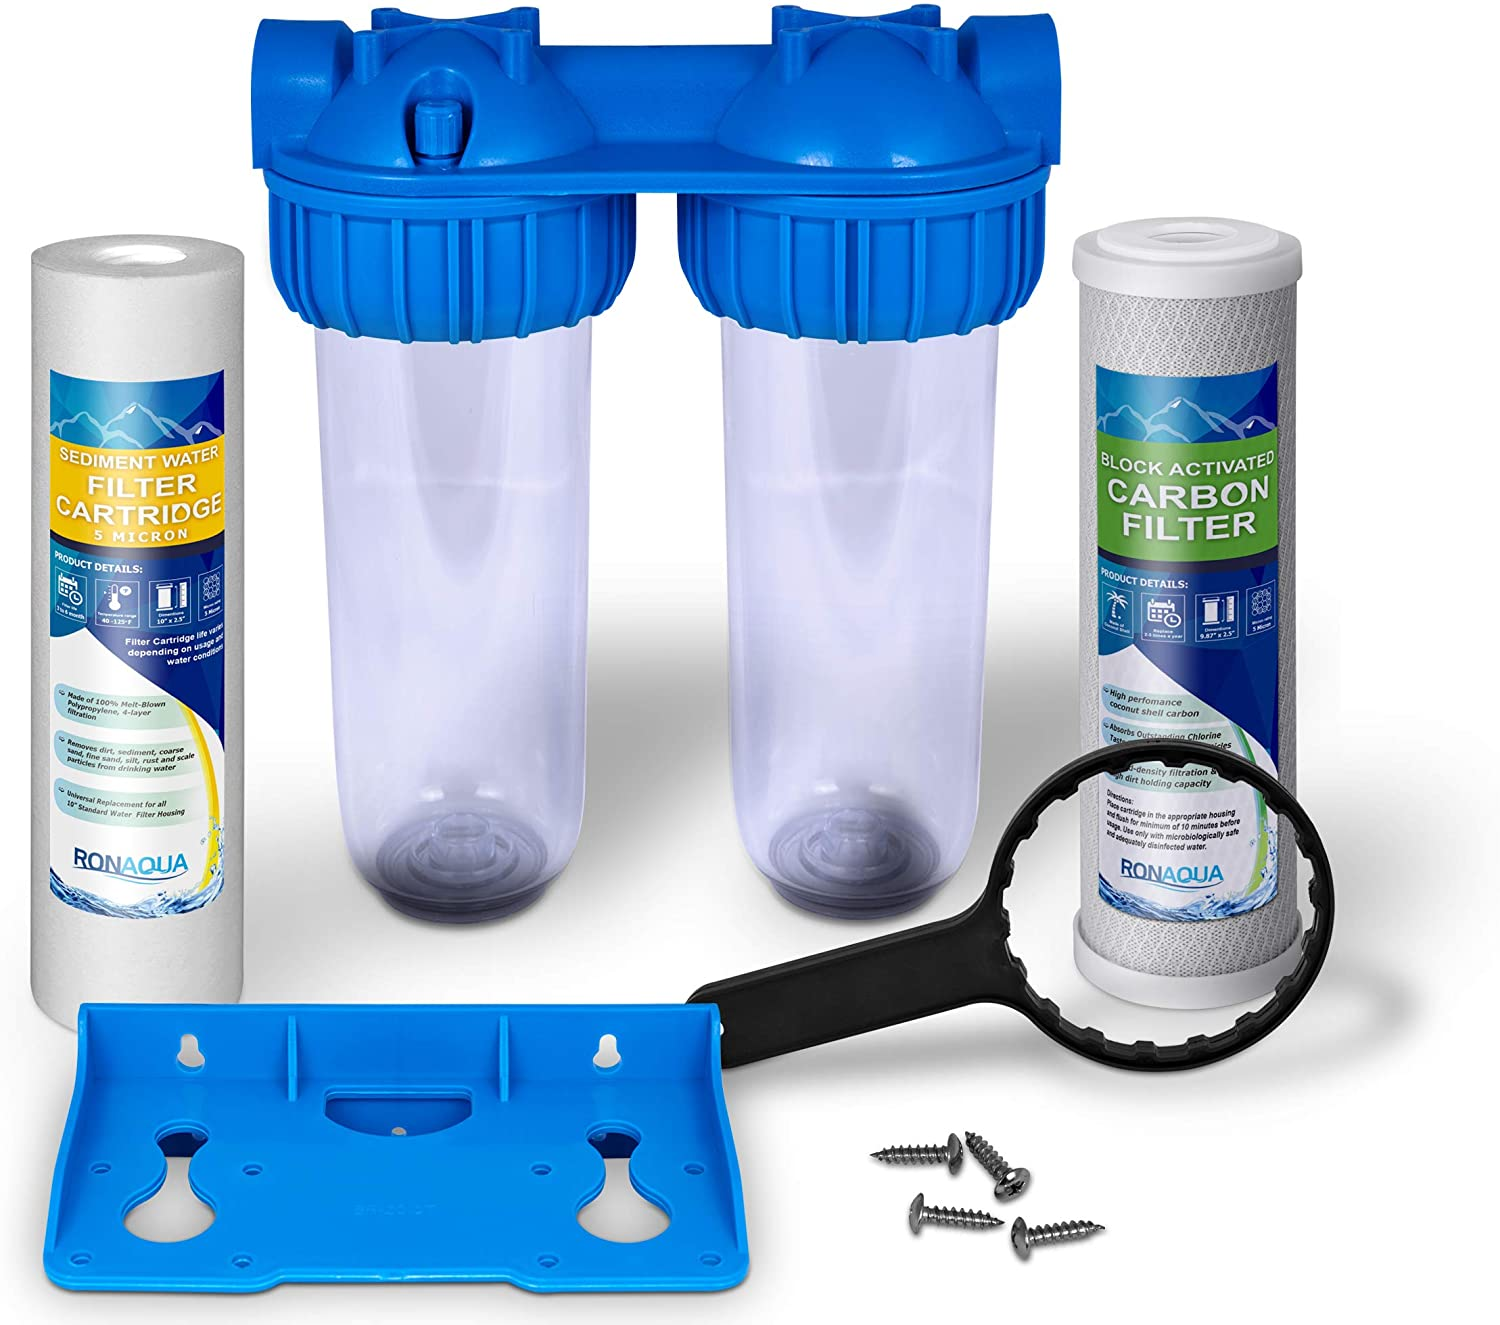 """3//4/"""" Inlet//Outlet Brass Port Dual Whole House Water Filter System 5 Mic Pleated /& Standard Sediment Filters Meets NSF Standards /& Regulations Presser Relief Button Transparent Standard Housings"""